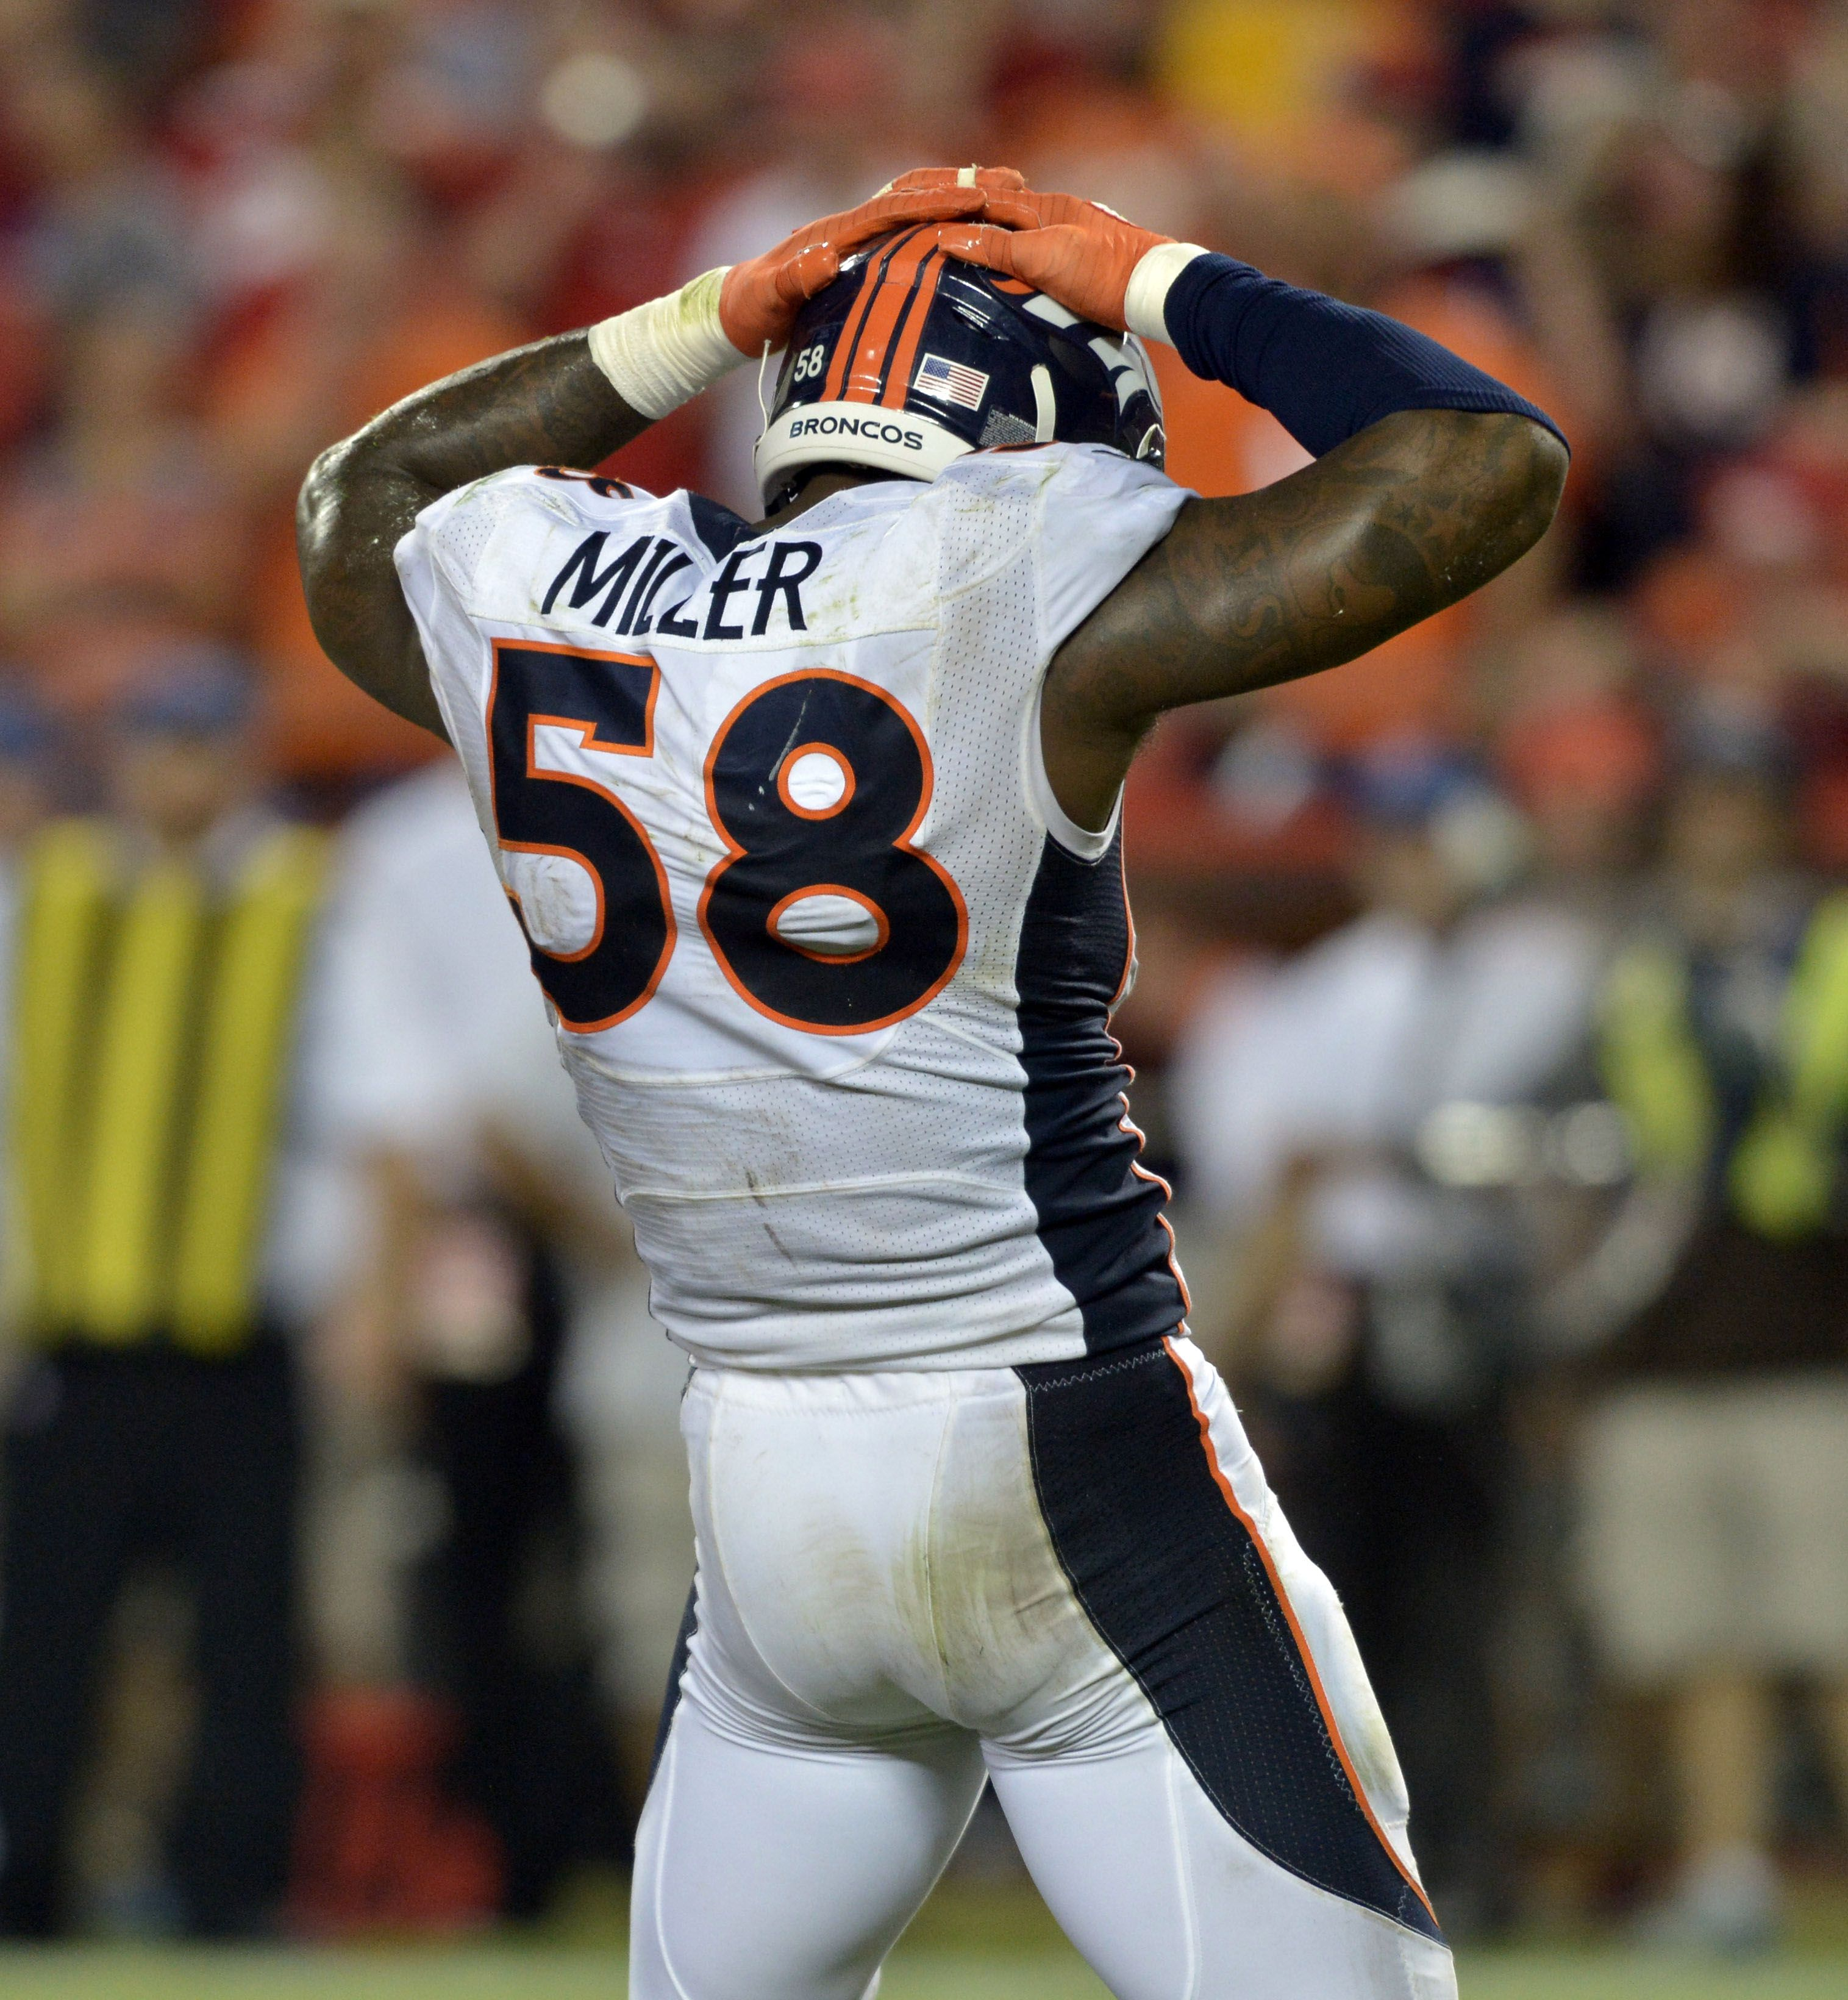 Pin on Von Miller